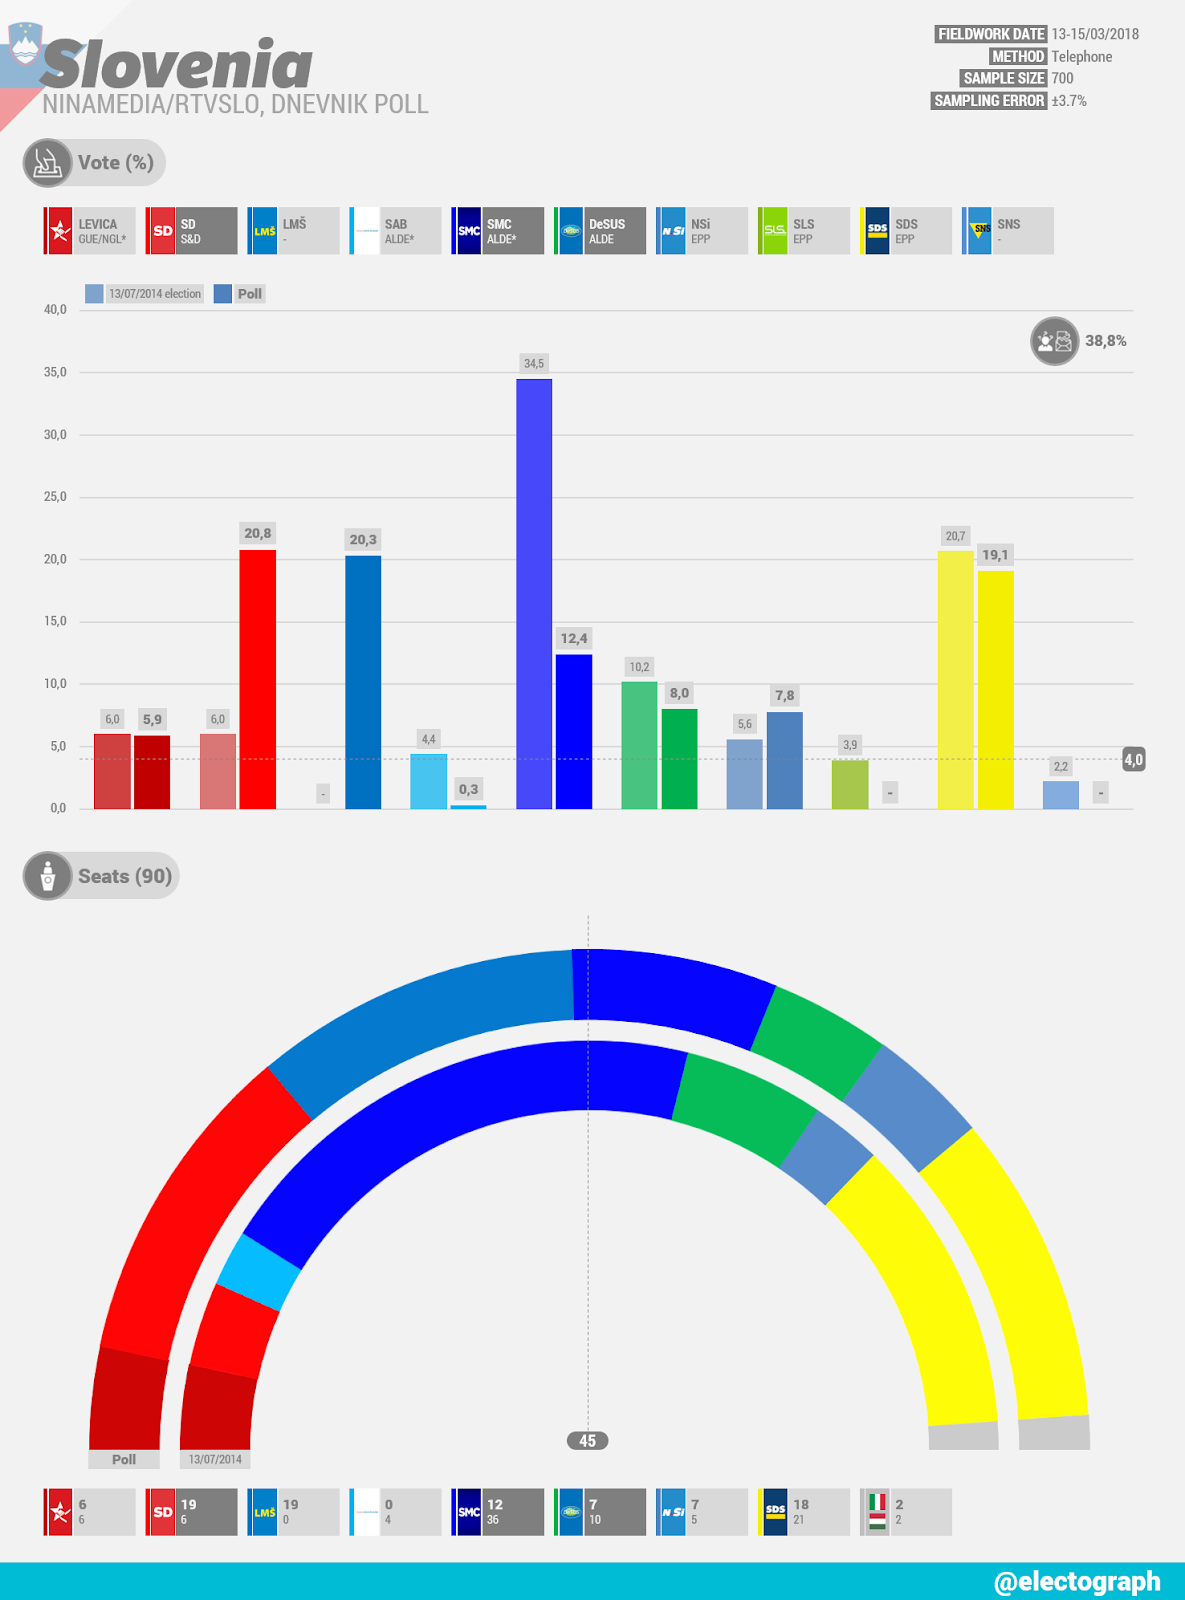 SLOVENIA Ninamedia poll chart for RTVSLO and Dnevnik, March 2018